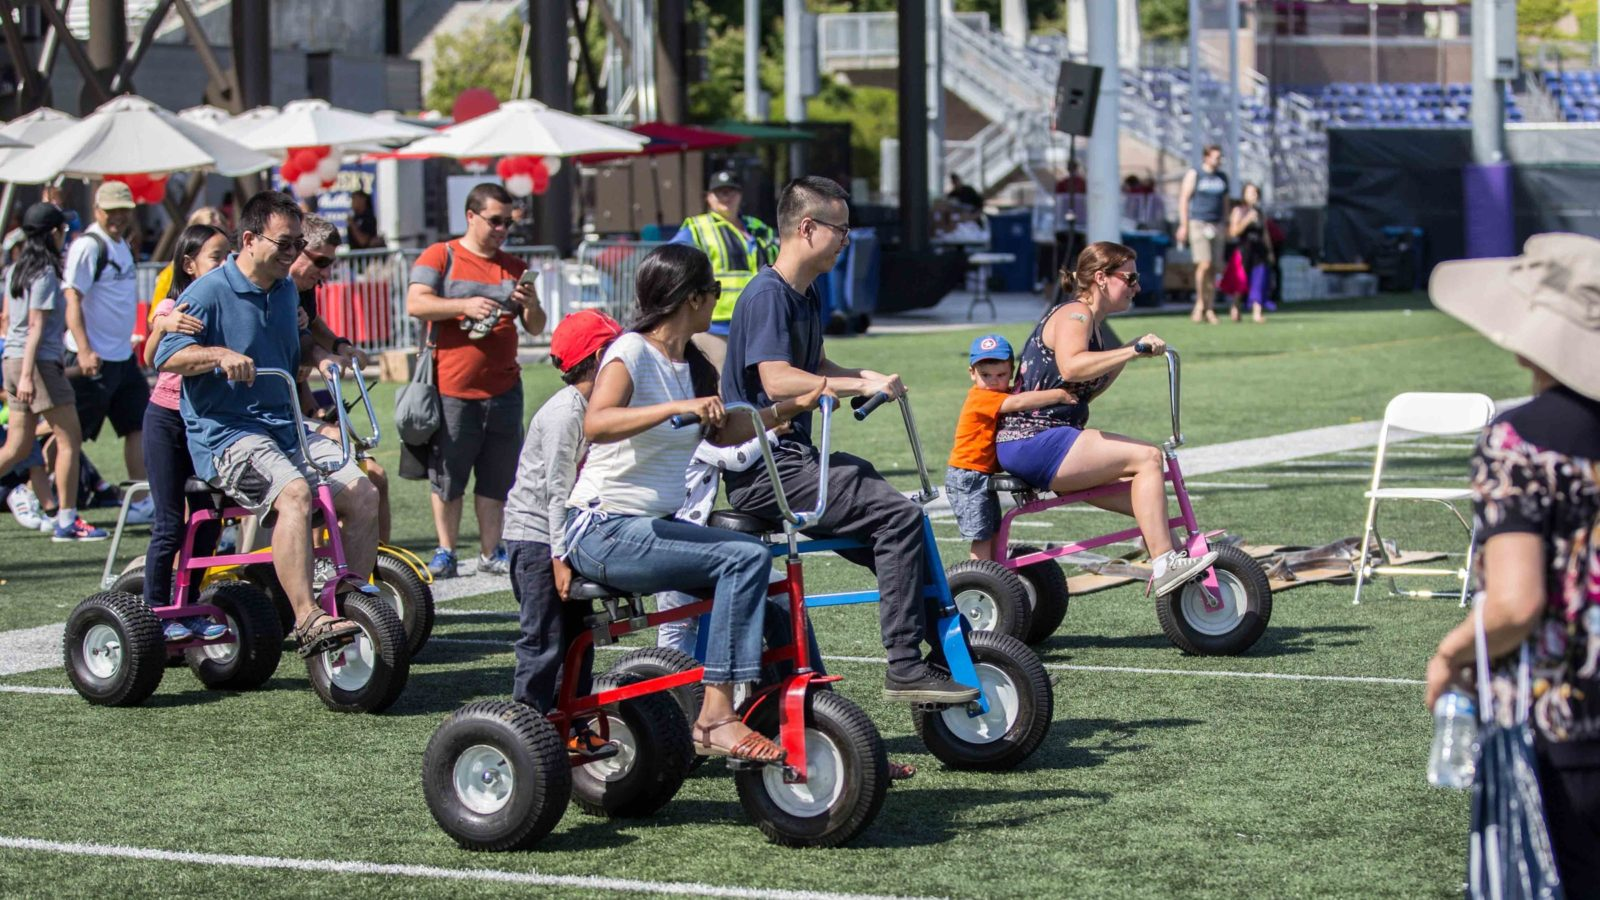 Rental Item of the Week: Giant Monster Tricycles